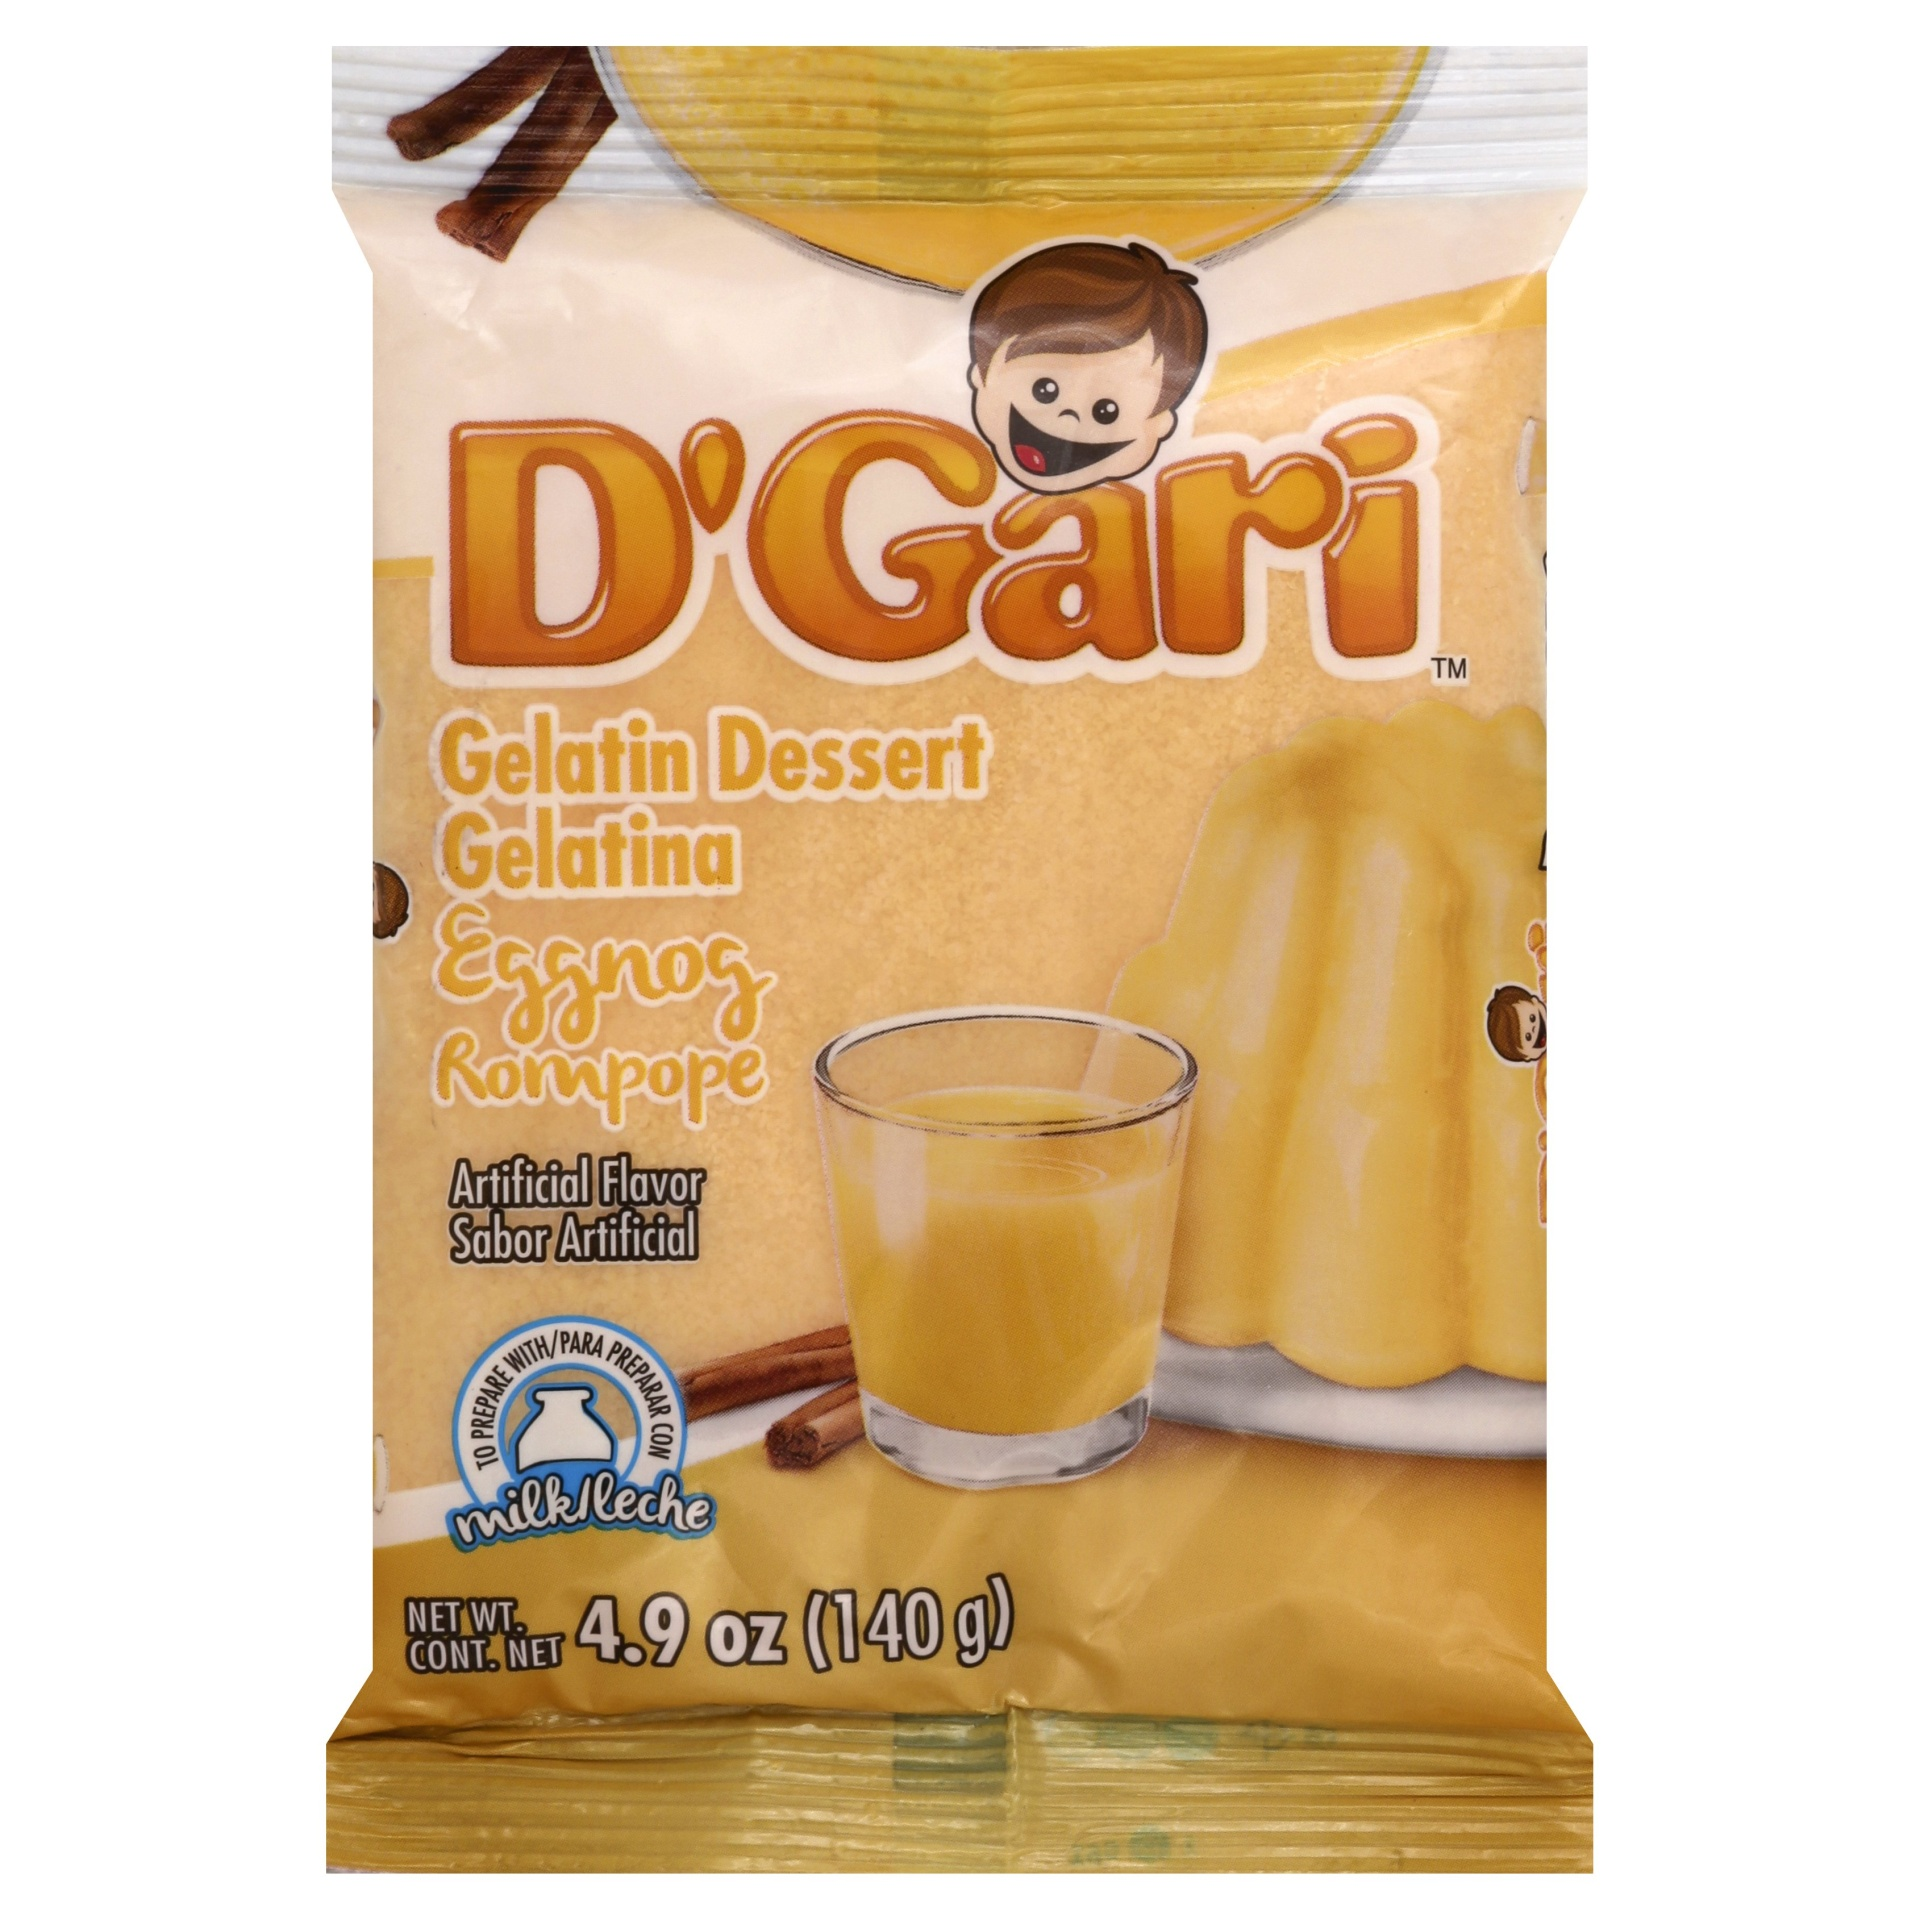 slide 1 of 1, D'Gari Eggnog Gelatin Dessert Mix,